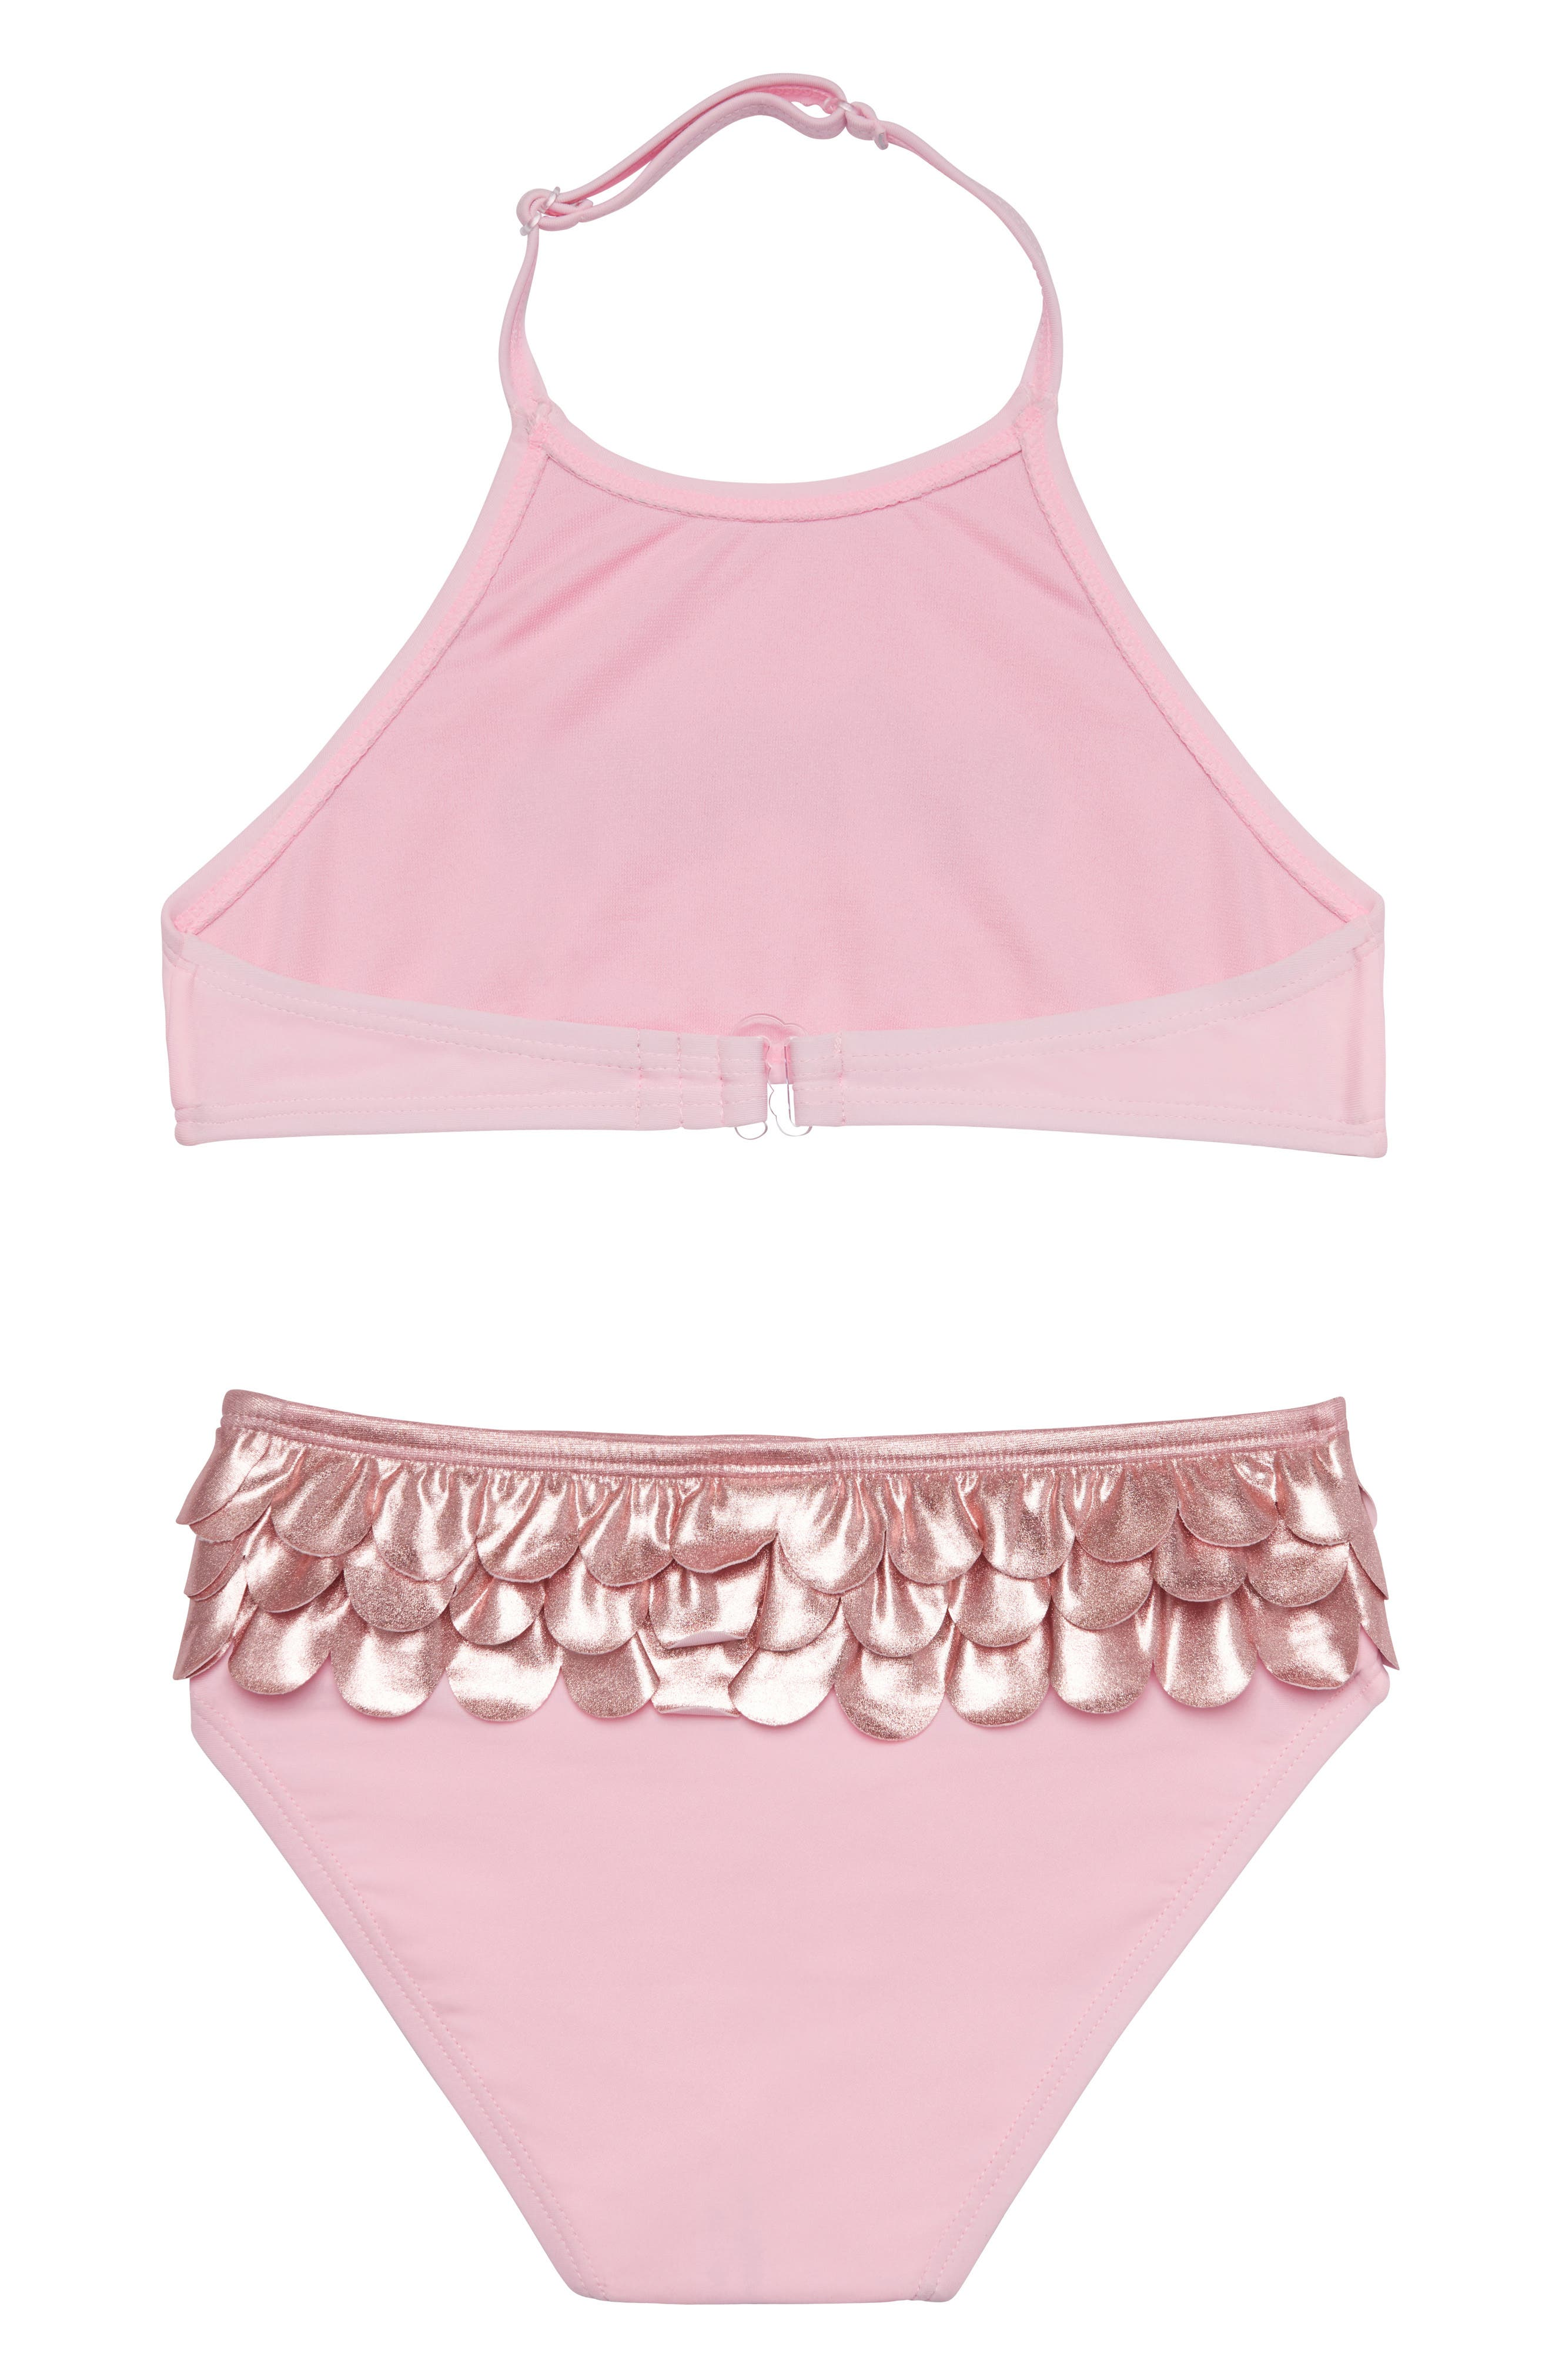 Mermaid Life Two-Piece Swimsuit,                             Alternate thumbnail 2, color,                             ROSE